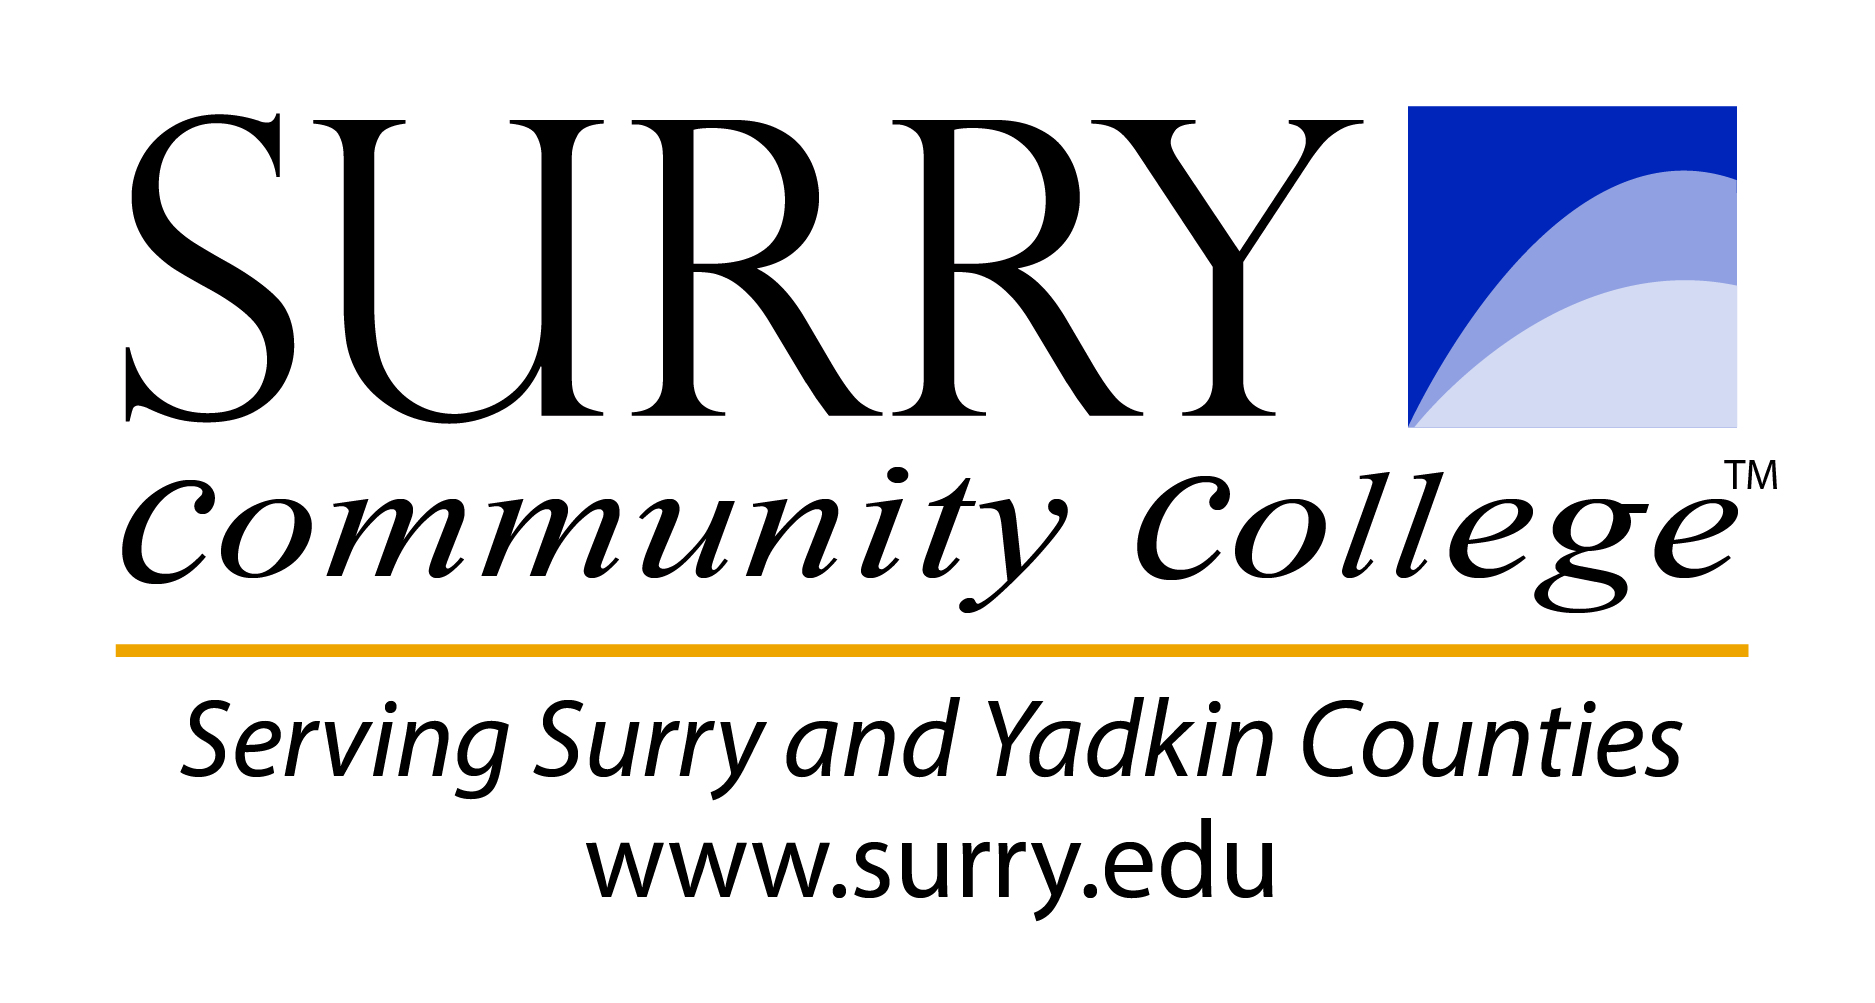 Surry Community College logo